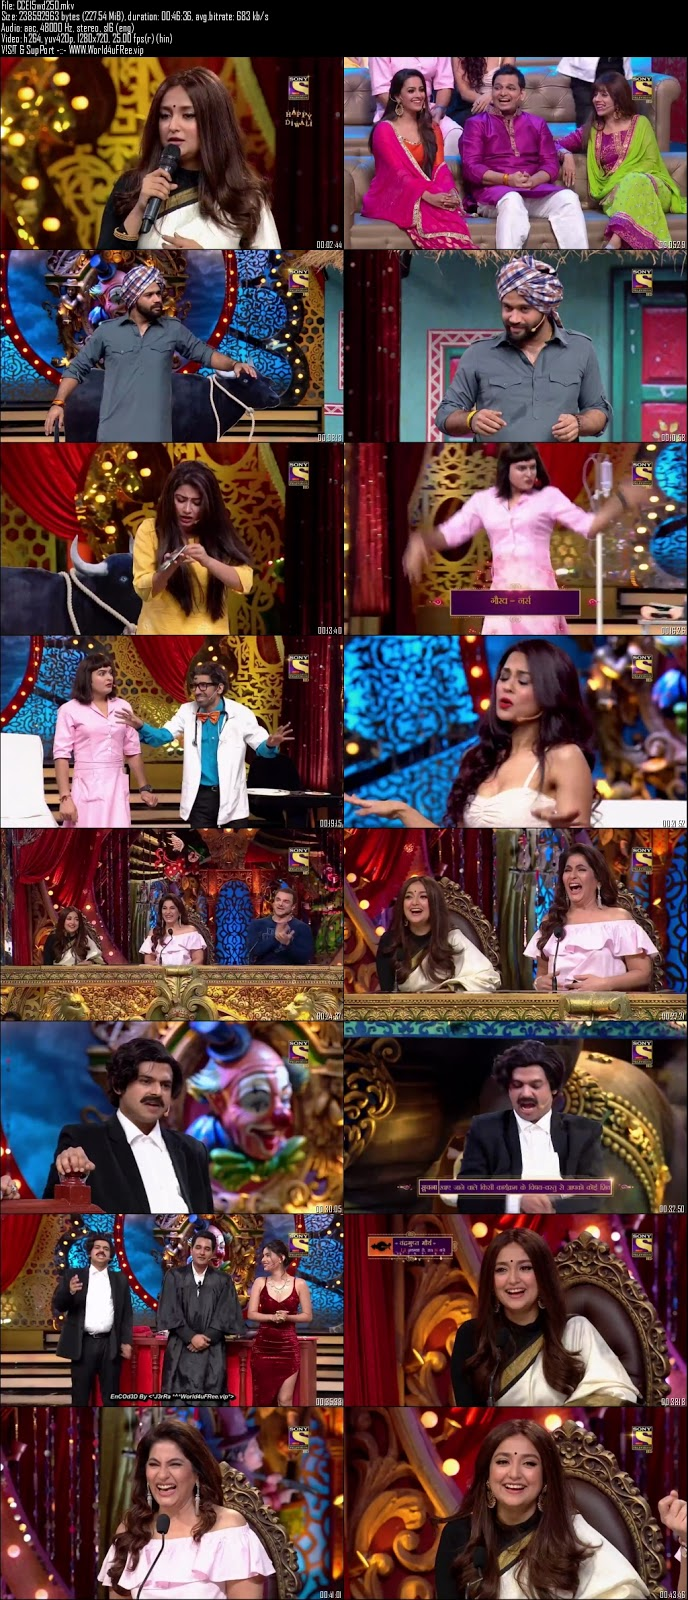 Comedy Circus 2018 Episode 15 720p WEBRip 250mb x264 world4ufree.fun tv show Comedy Circus 2018 hindi tv show Comedy Circus 2018 Season 1 sony tv show compressed small size free download or watch online at world4ufree.fun